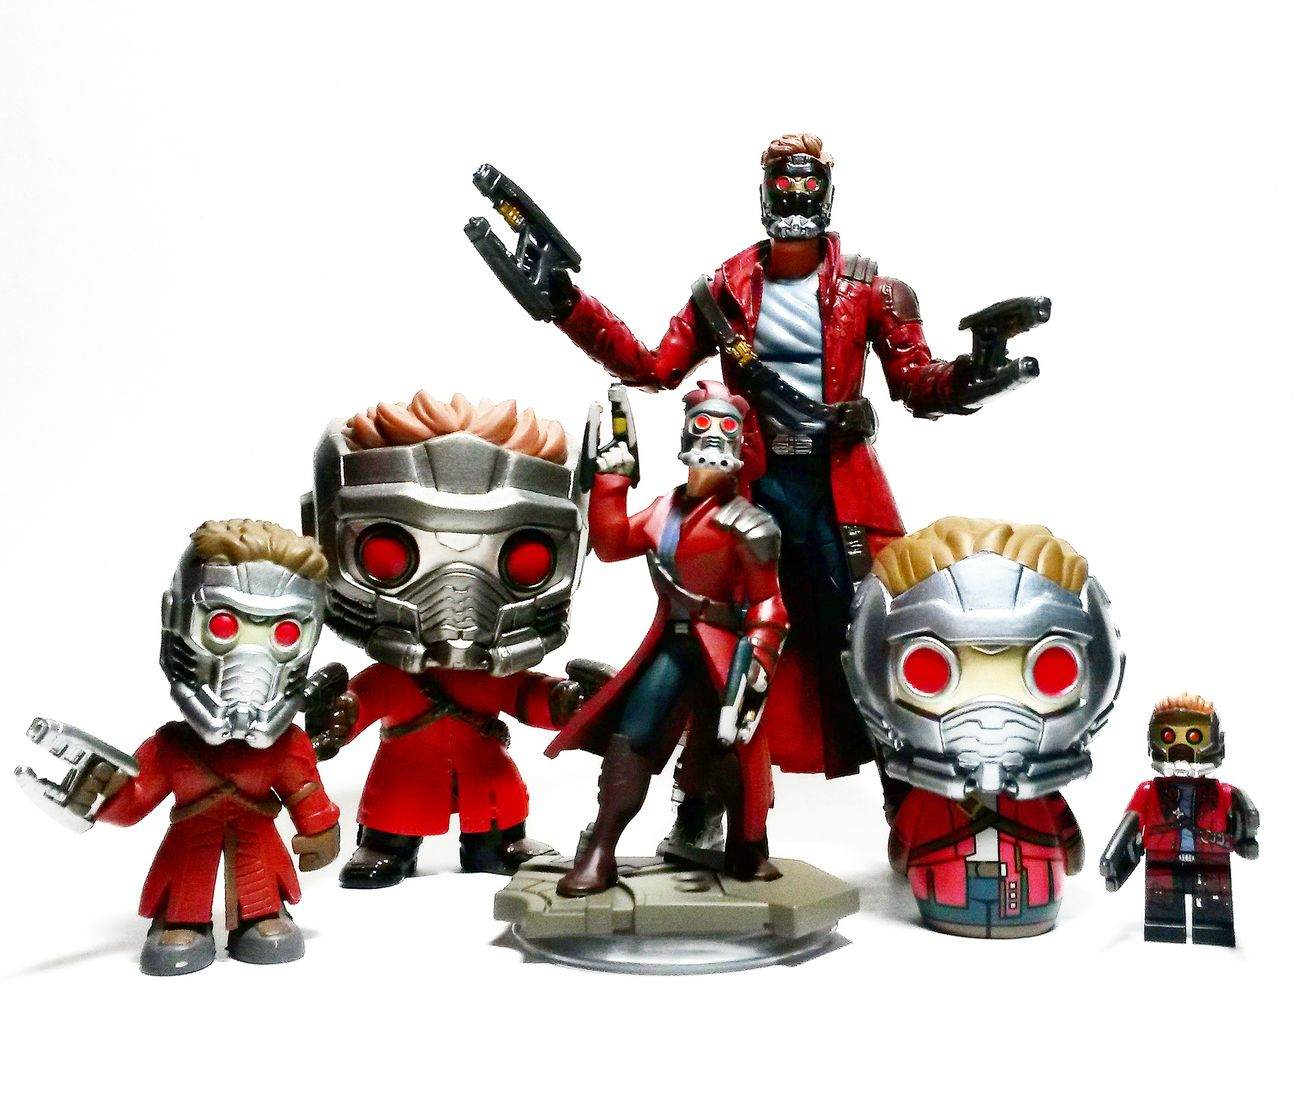 Star Lord Star Lord Disney Infinity Funko LEGO Lego Minifigures Dorbz Marvel Legends Marvel